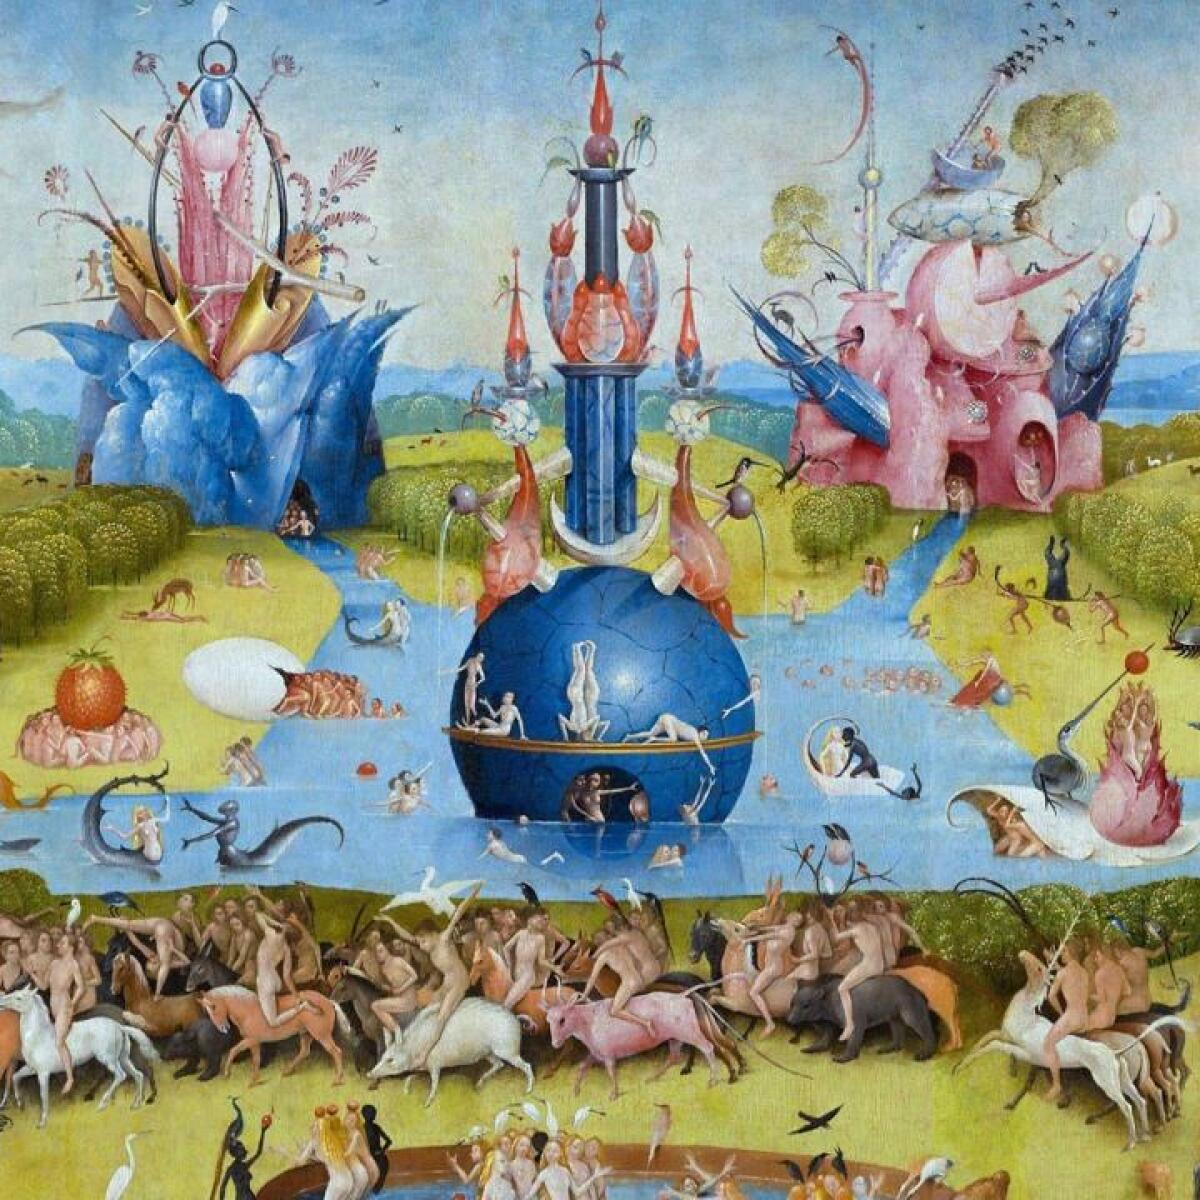 Hieronymus Bosch's 'The Garden of Earthly Delights', A Journey ...